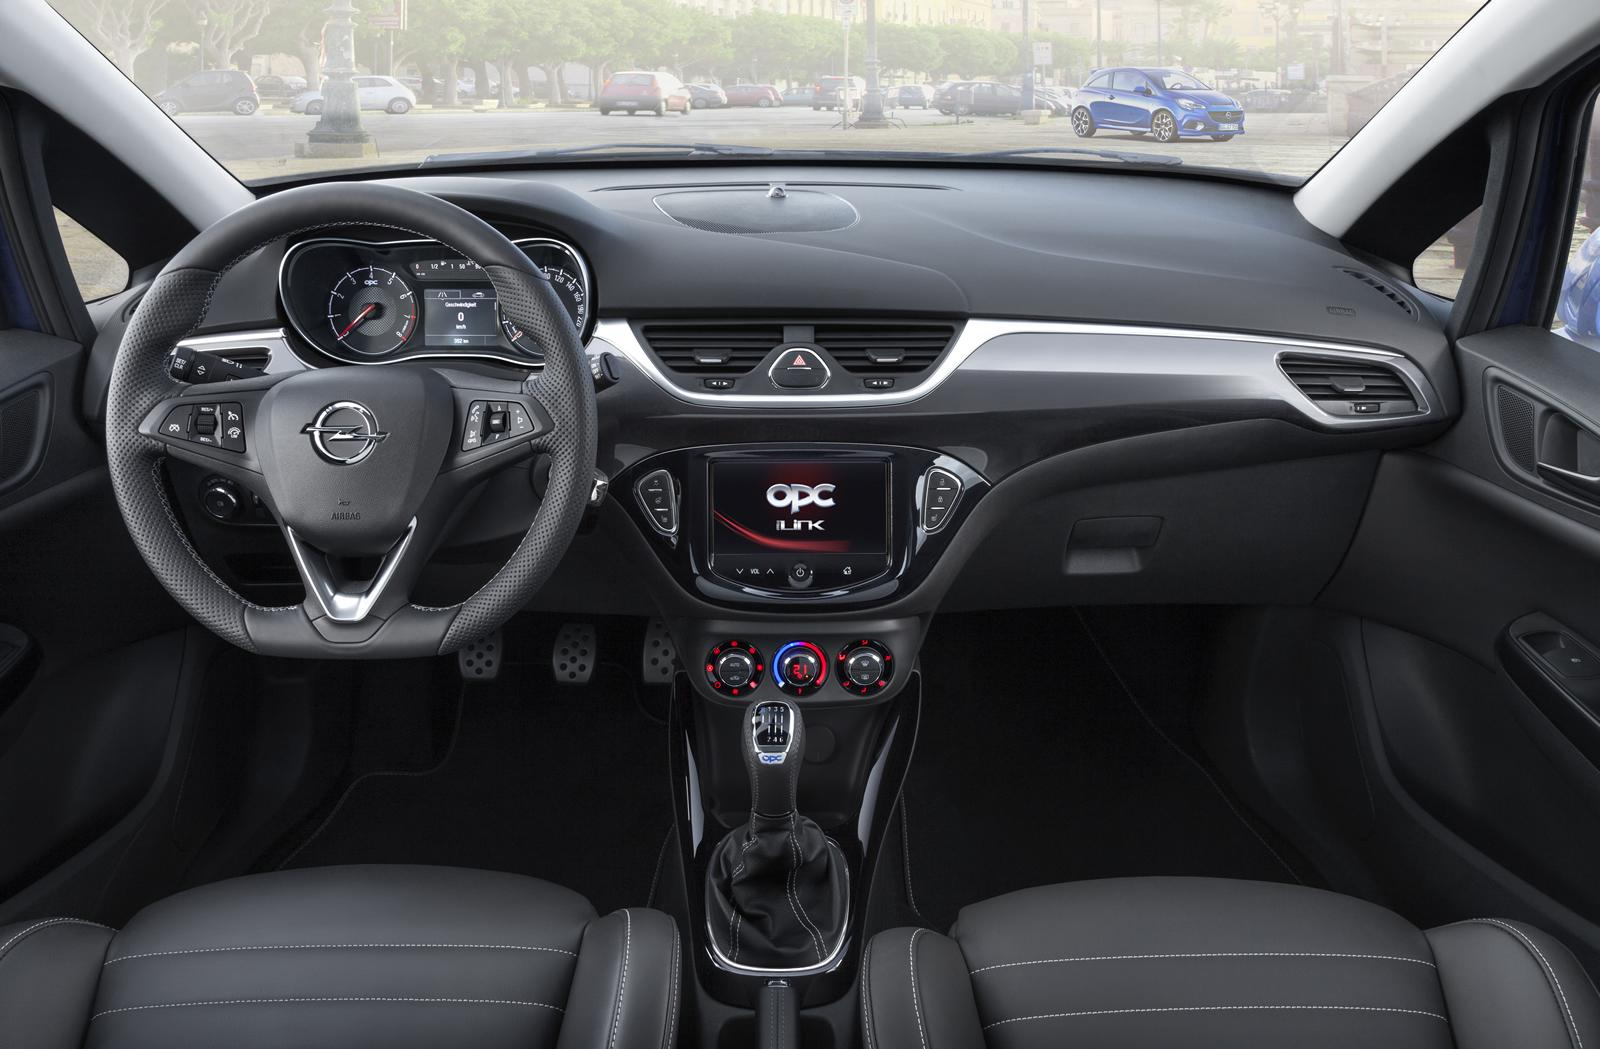 Vw Of America >> 2015 Opel Corsa OPC Revealed with 207 HP 1.6-Liter Turbo - autoevolution